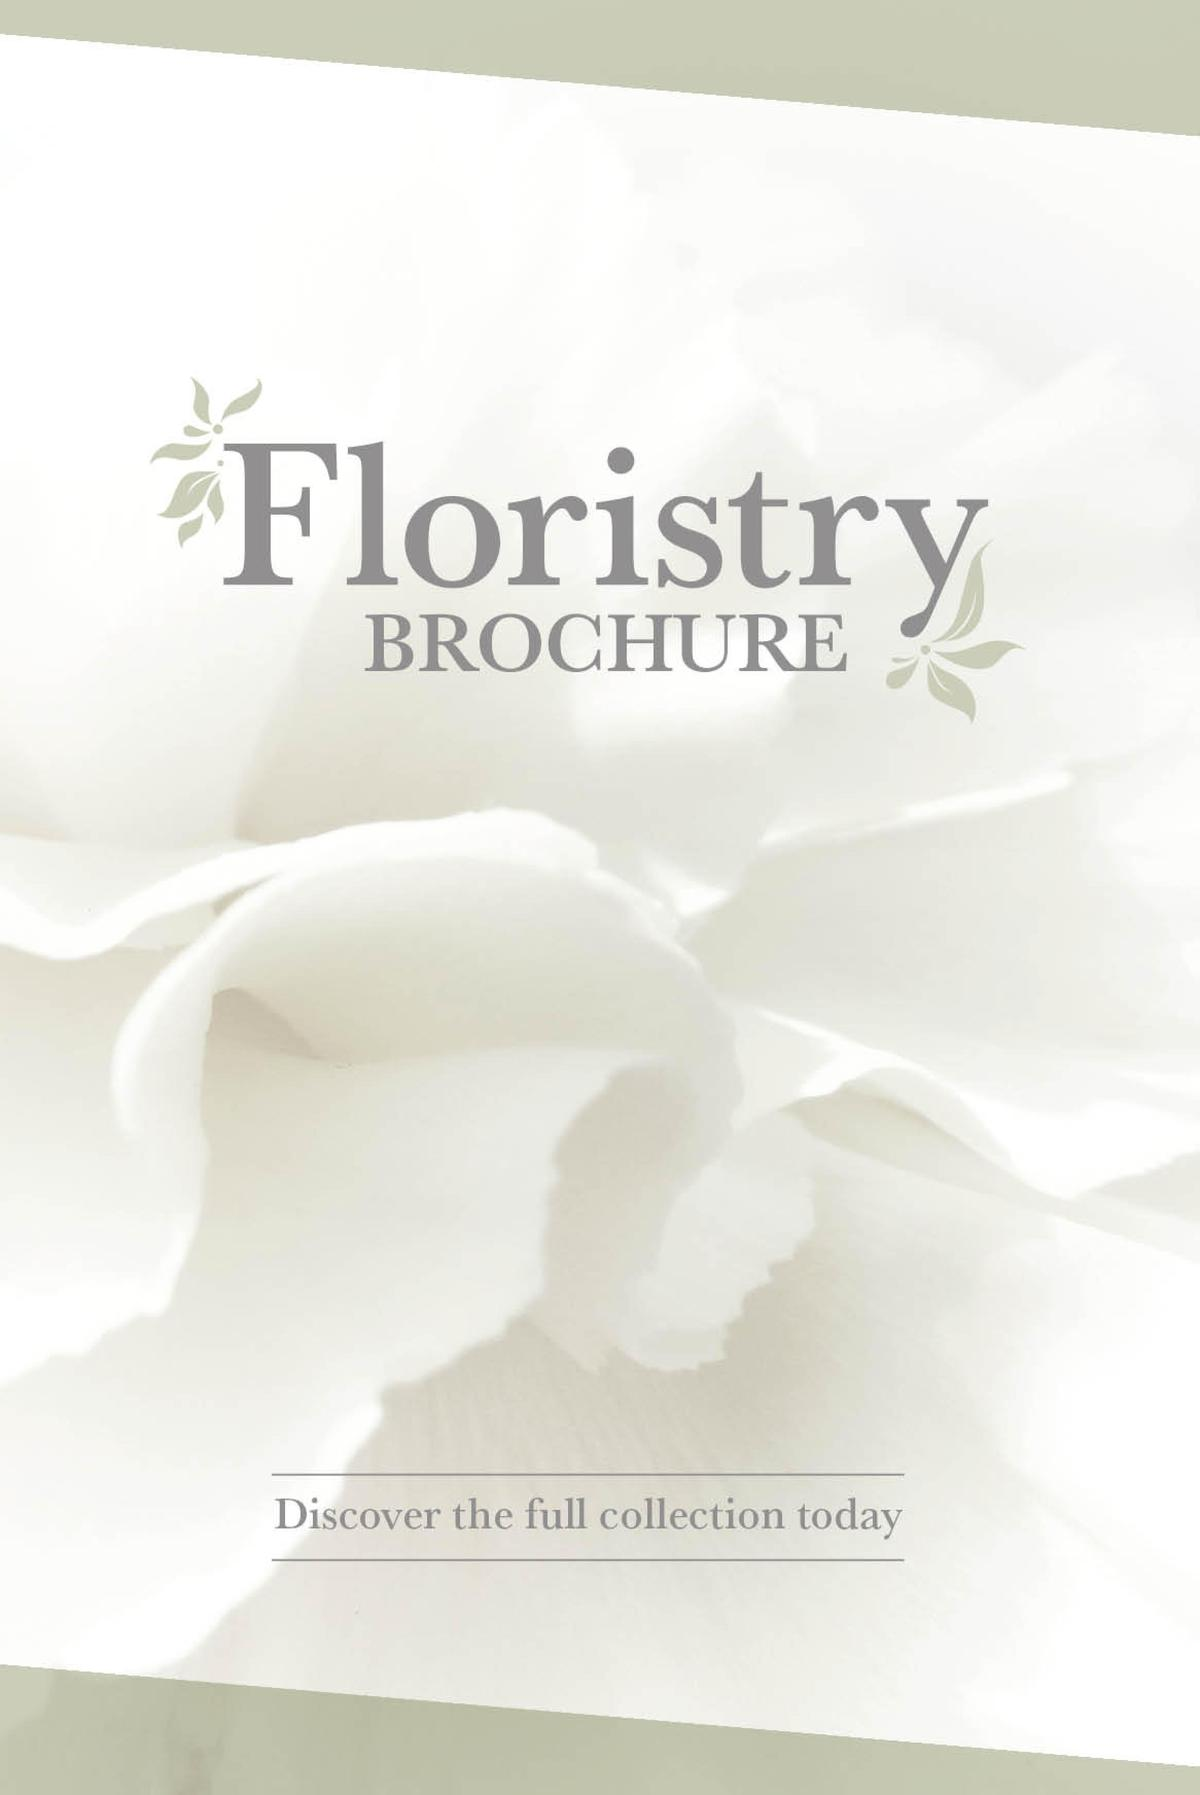 The Range Floristry Brochure Offers from January 20